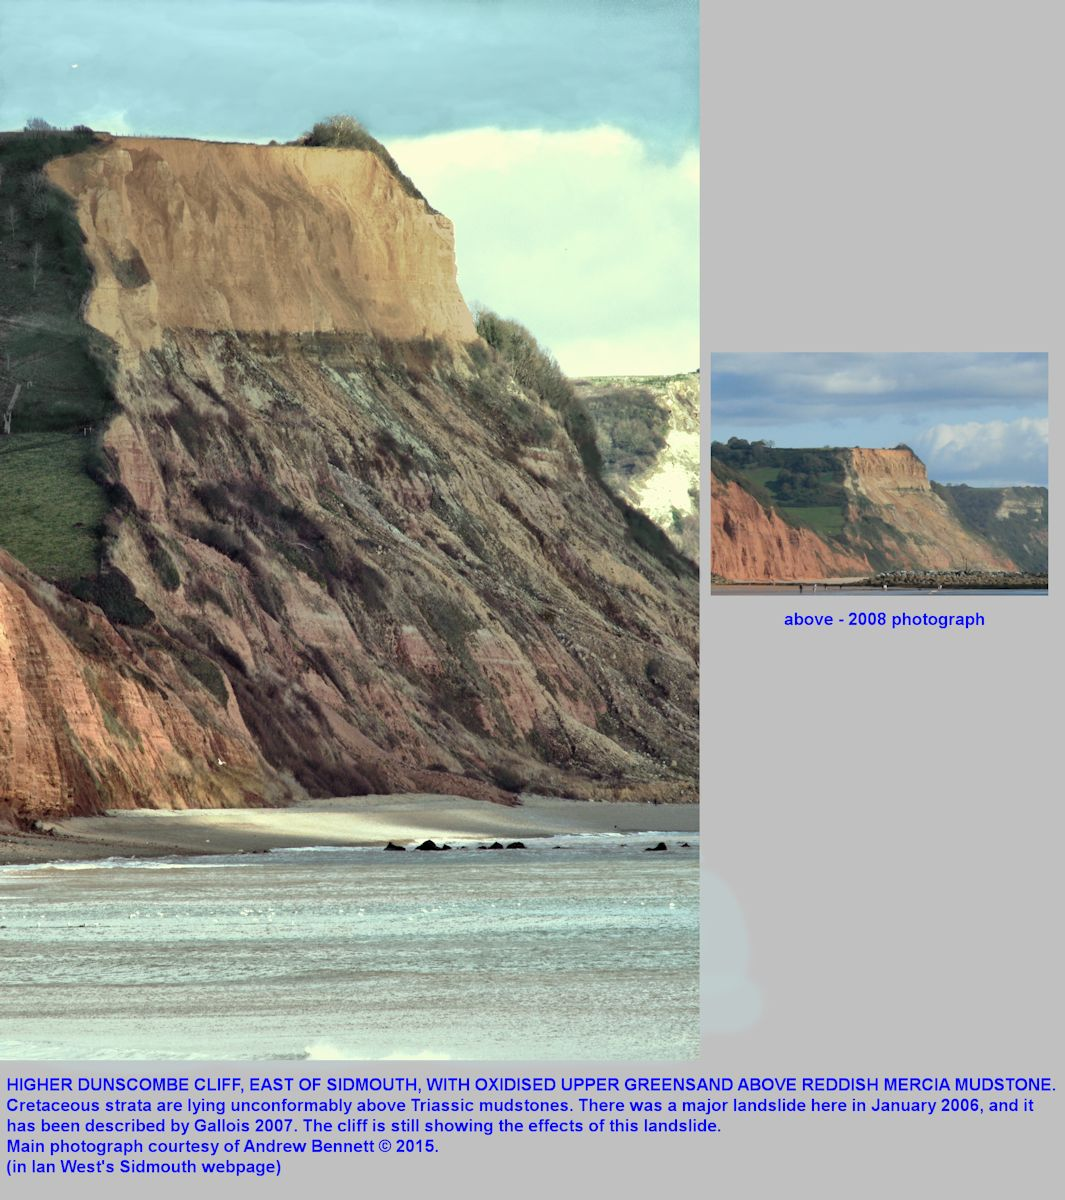 Higher Dunscombe Cliff east of Sidmouth, Devon, showing yellowish weathered Cretaceous Upper Greensand lying unconformably above Triassic Mercia Mudstone, also with the remains of a landslide in 2006